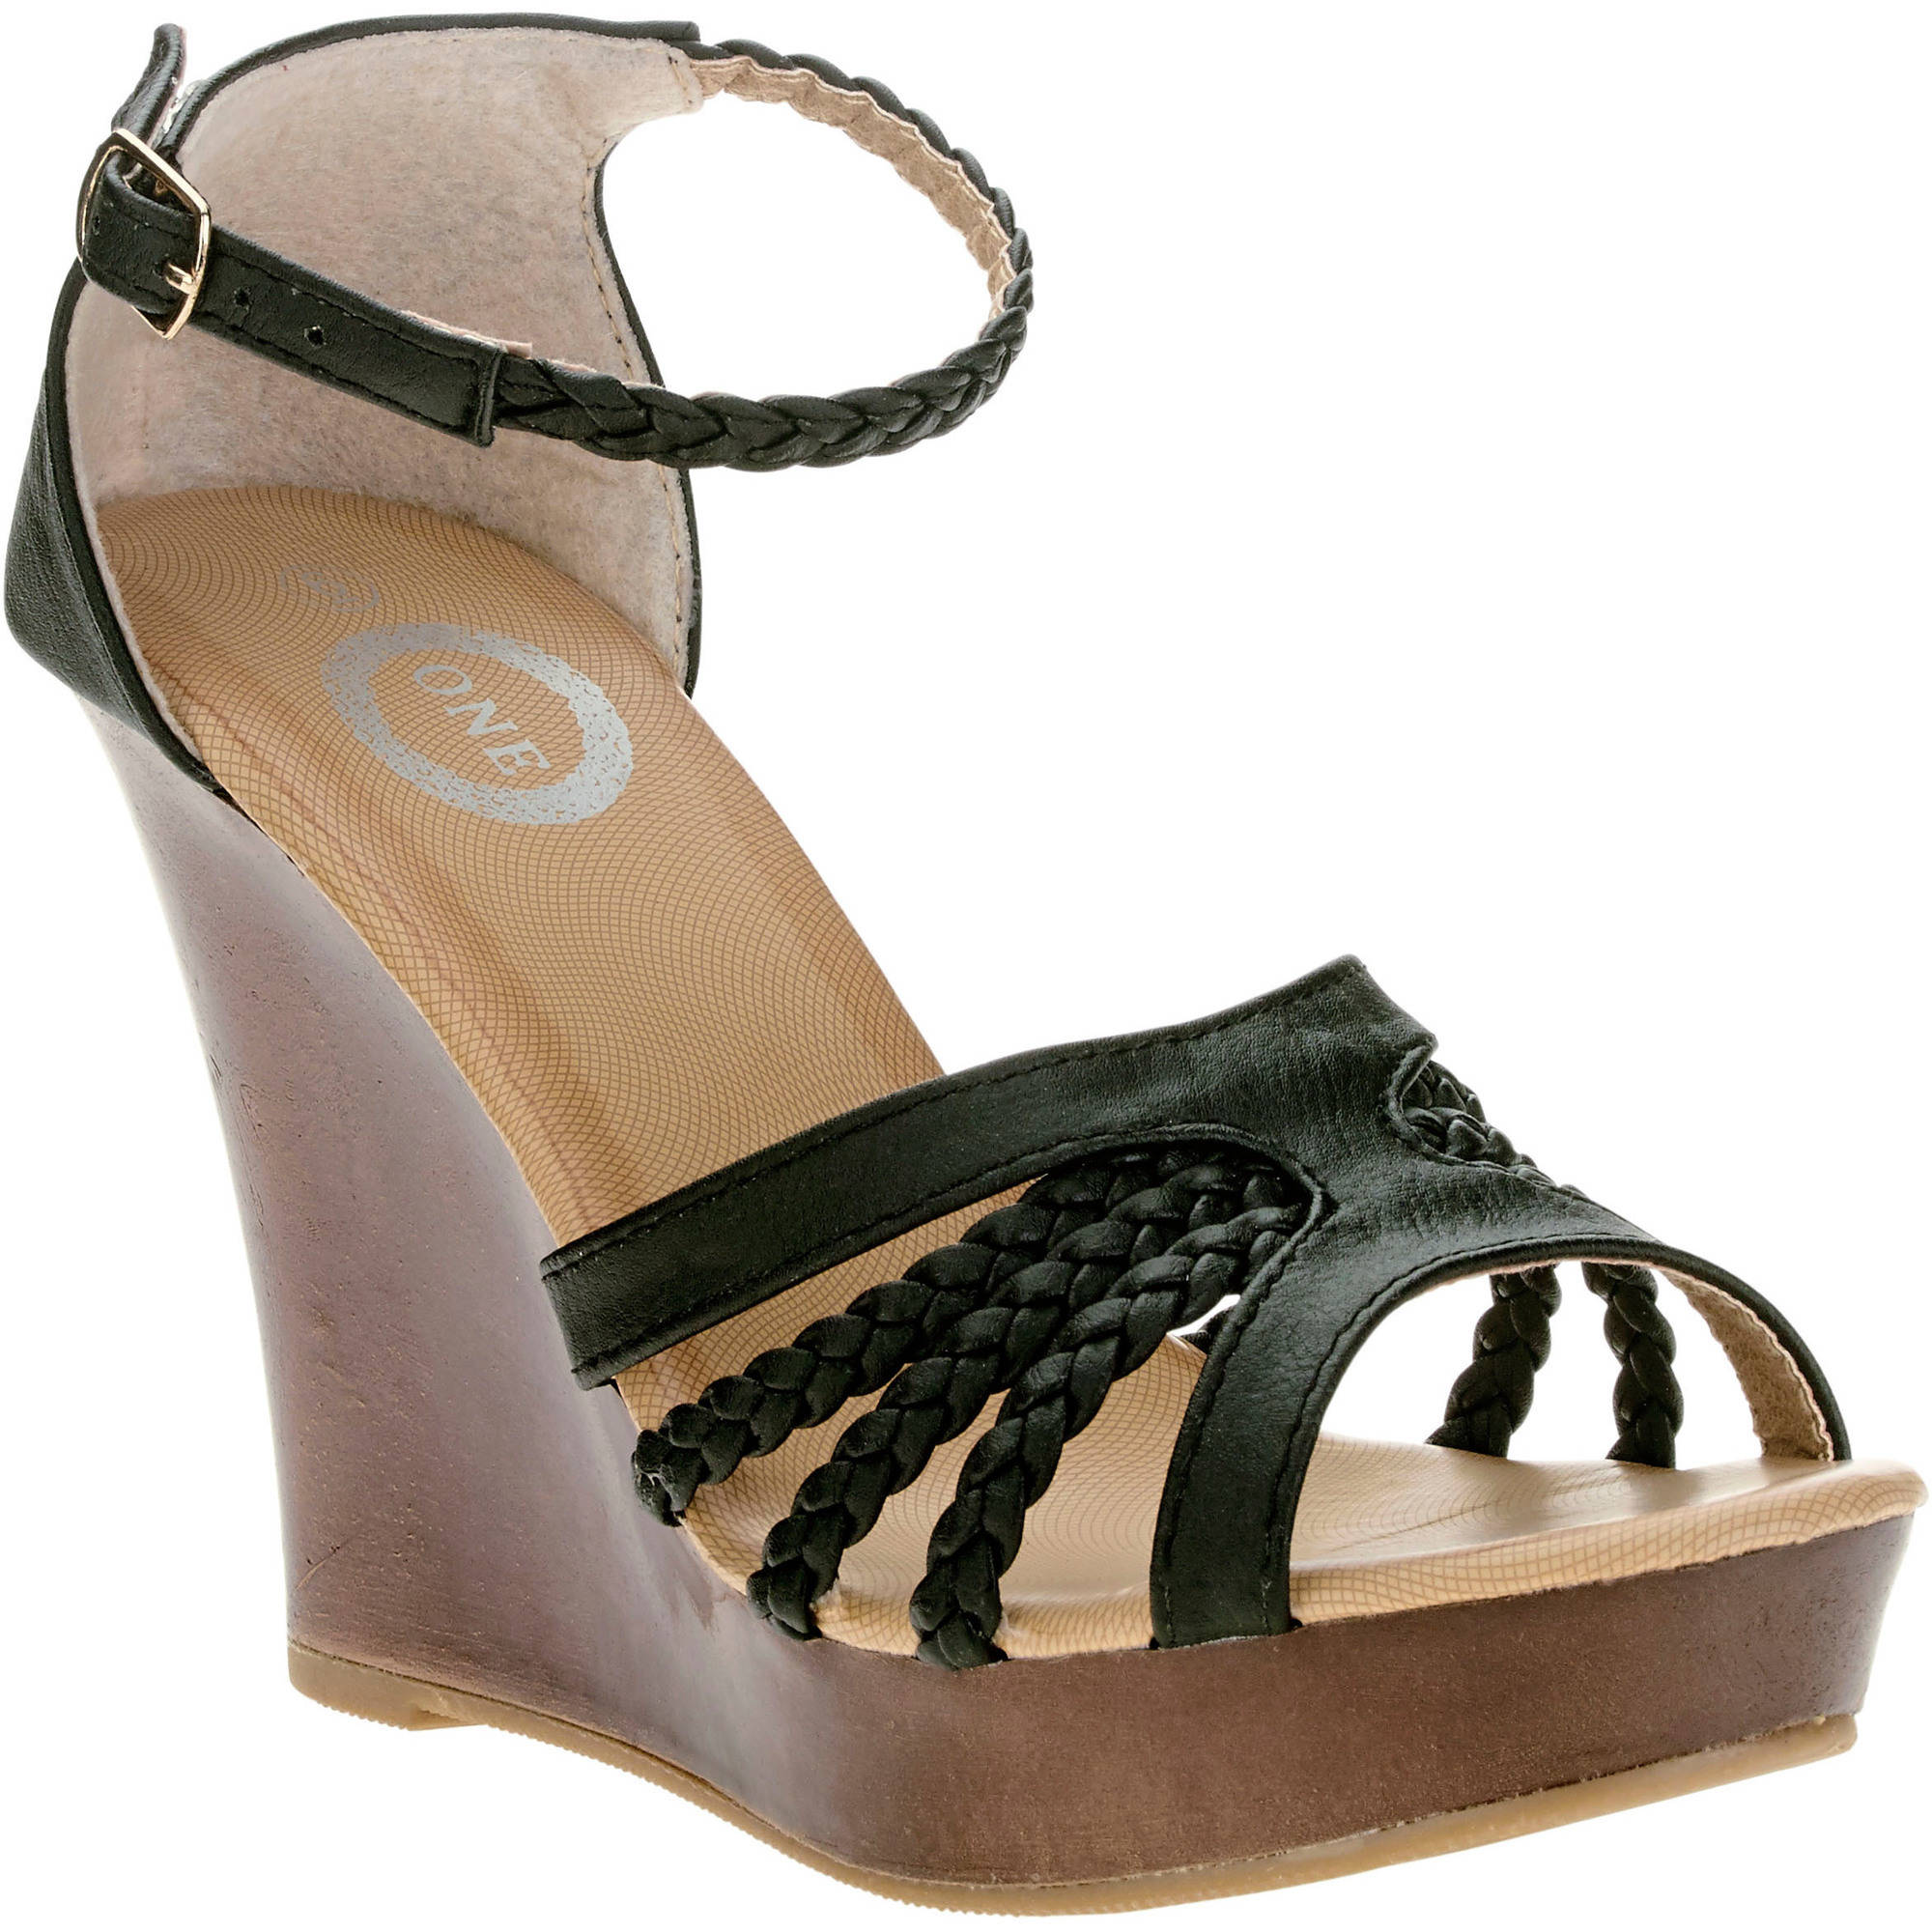 One Women's Open Toe Braided Wedge Sandal